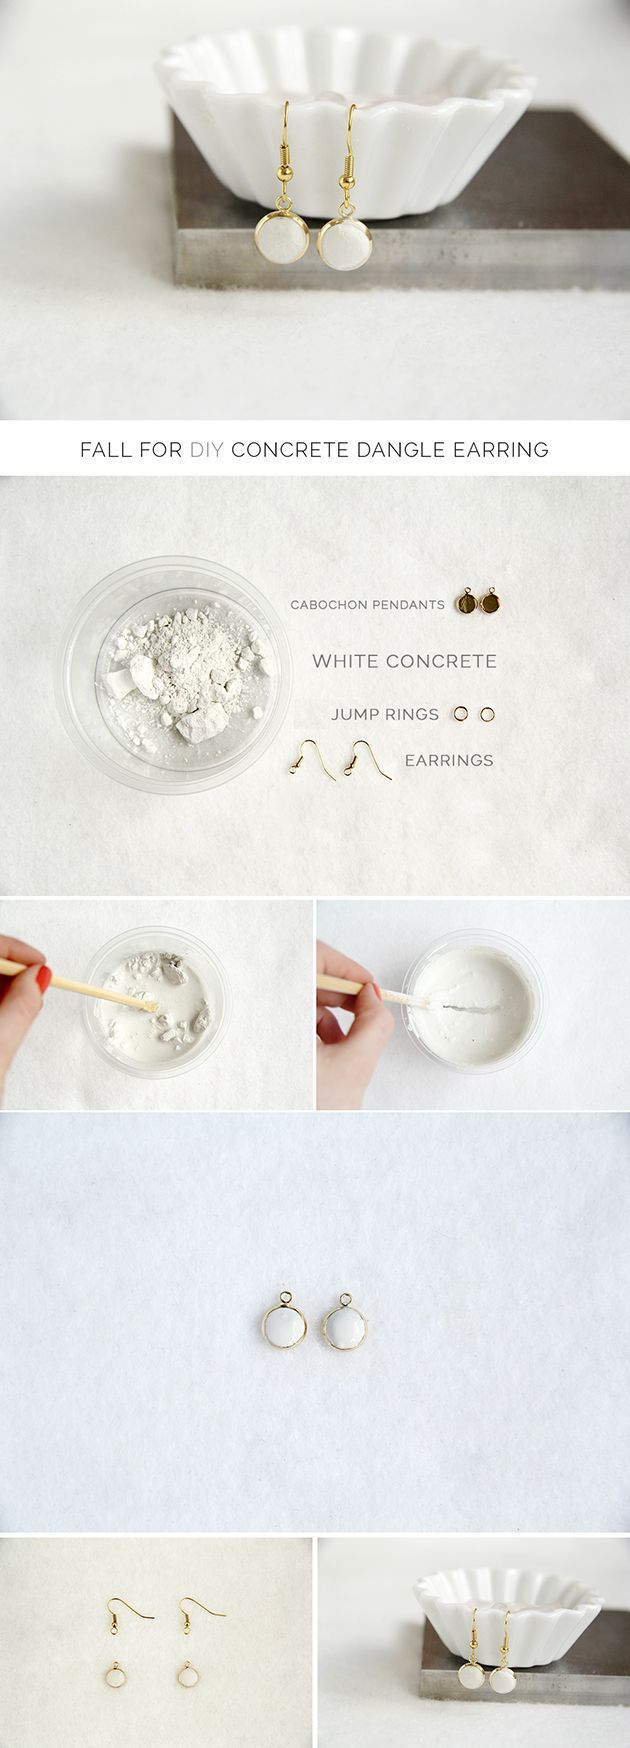 Fall For DIY Concrete Earrings jewellery tutorial #jewelry